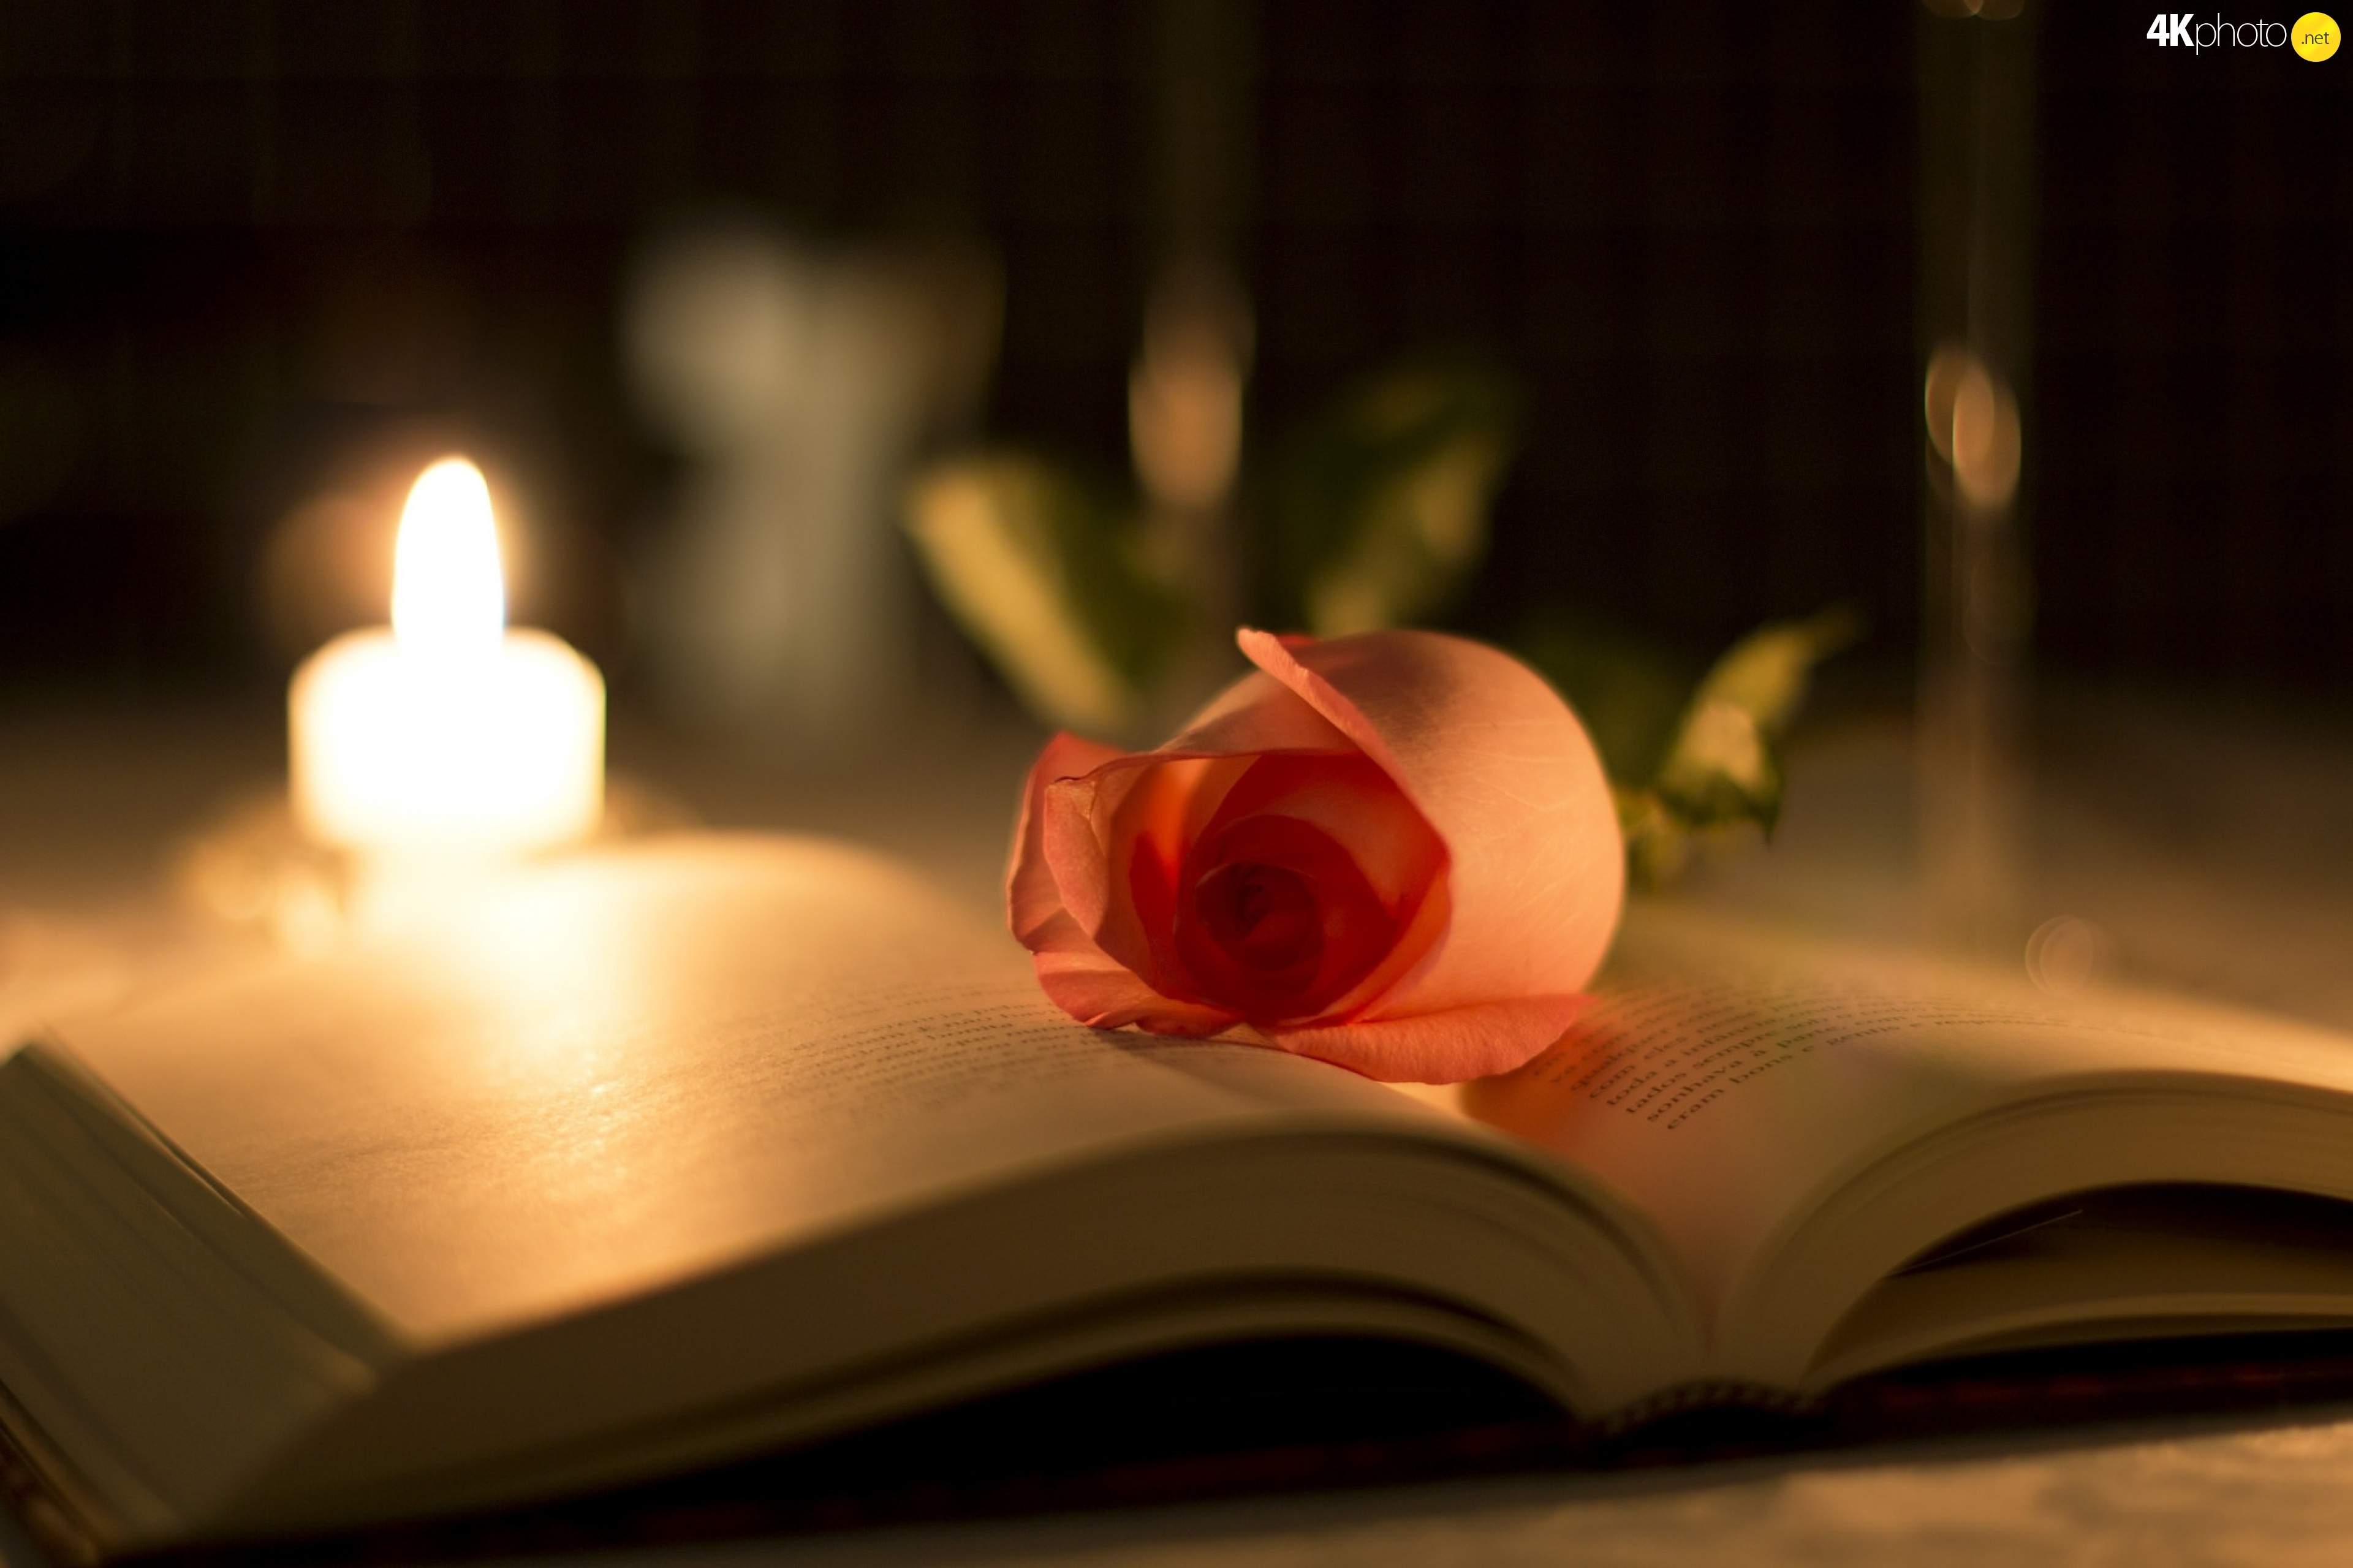 book-candle-rose.jpg